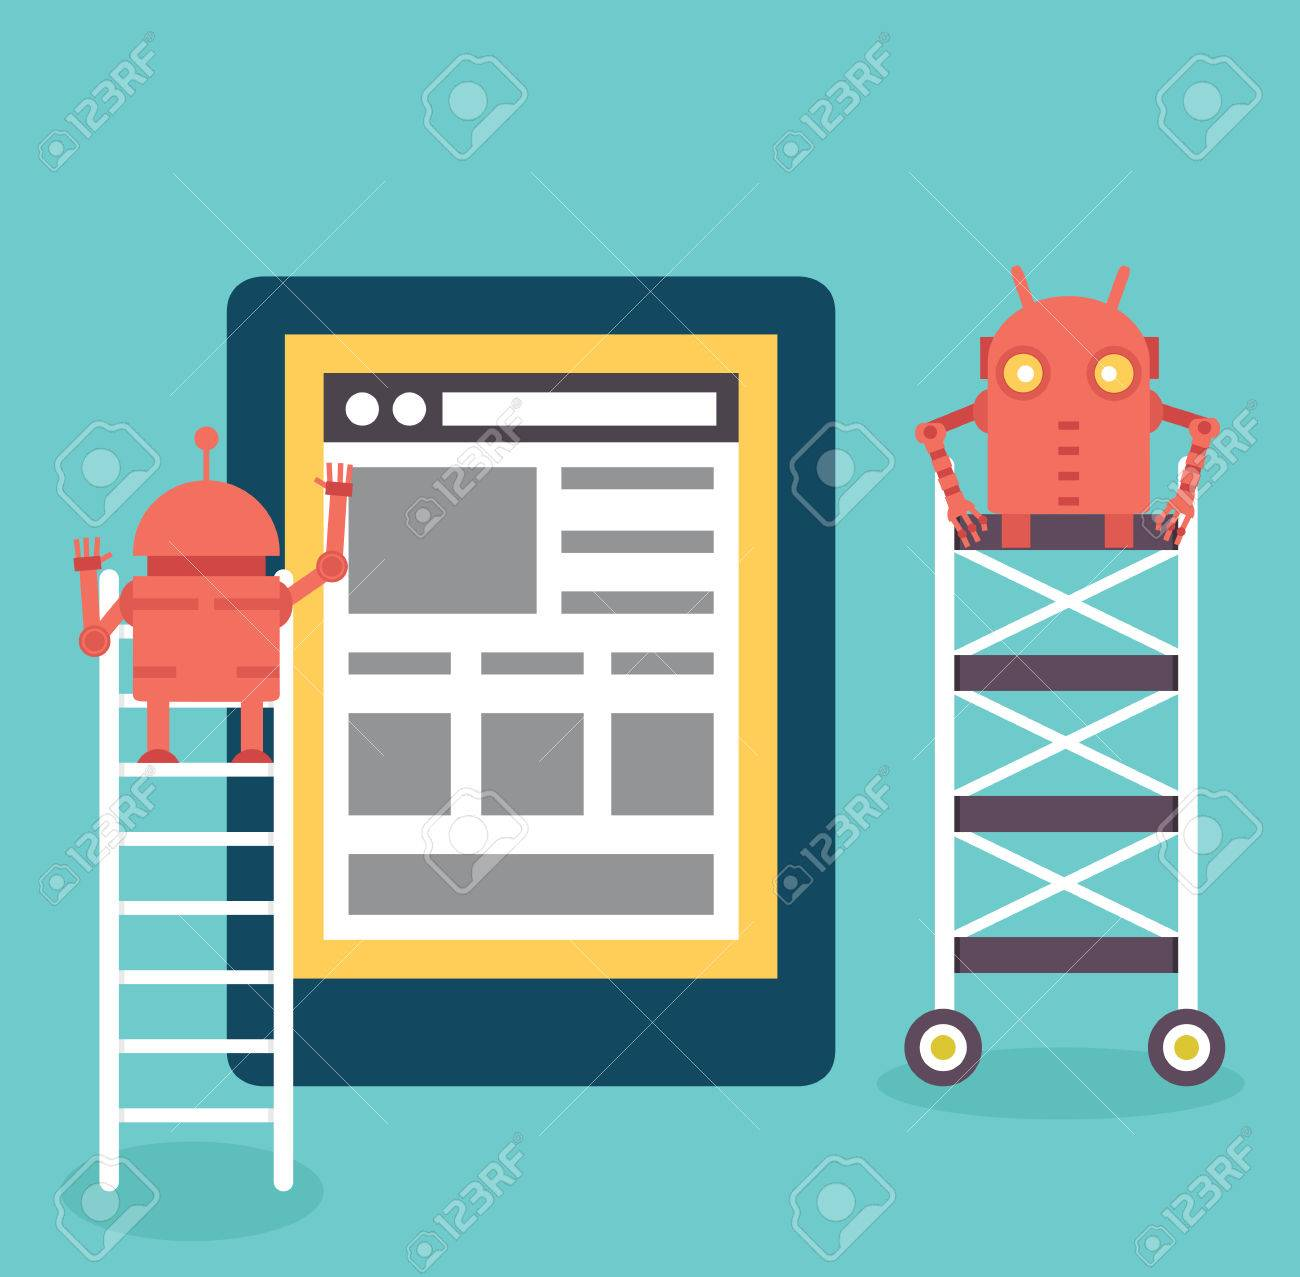 content creation stock photos images royalty content content creation process of creating site development skeleton framework of a website